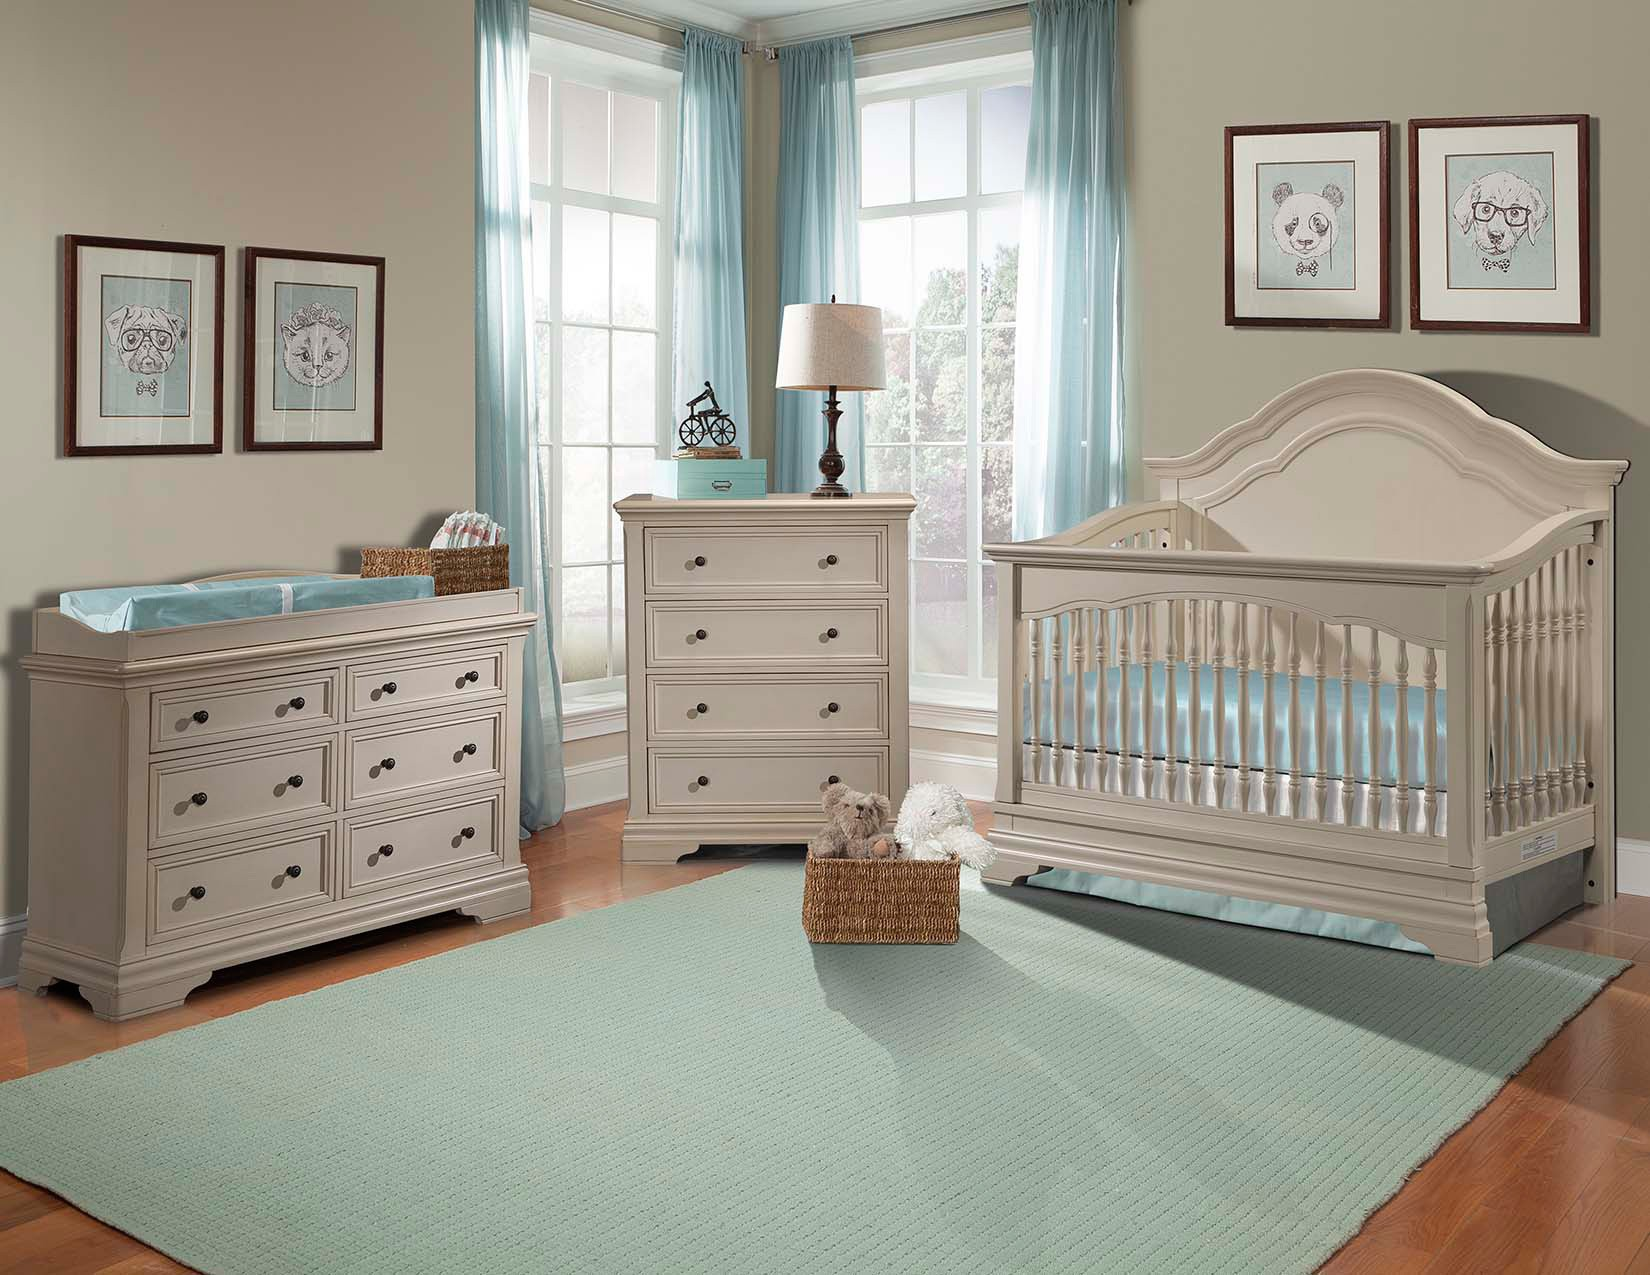 Full Size Baby Bedroom Furniture Sets From Bedroom Baby Nursery Furniture And How To Choose From PVBCALH